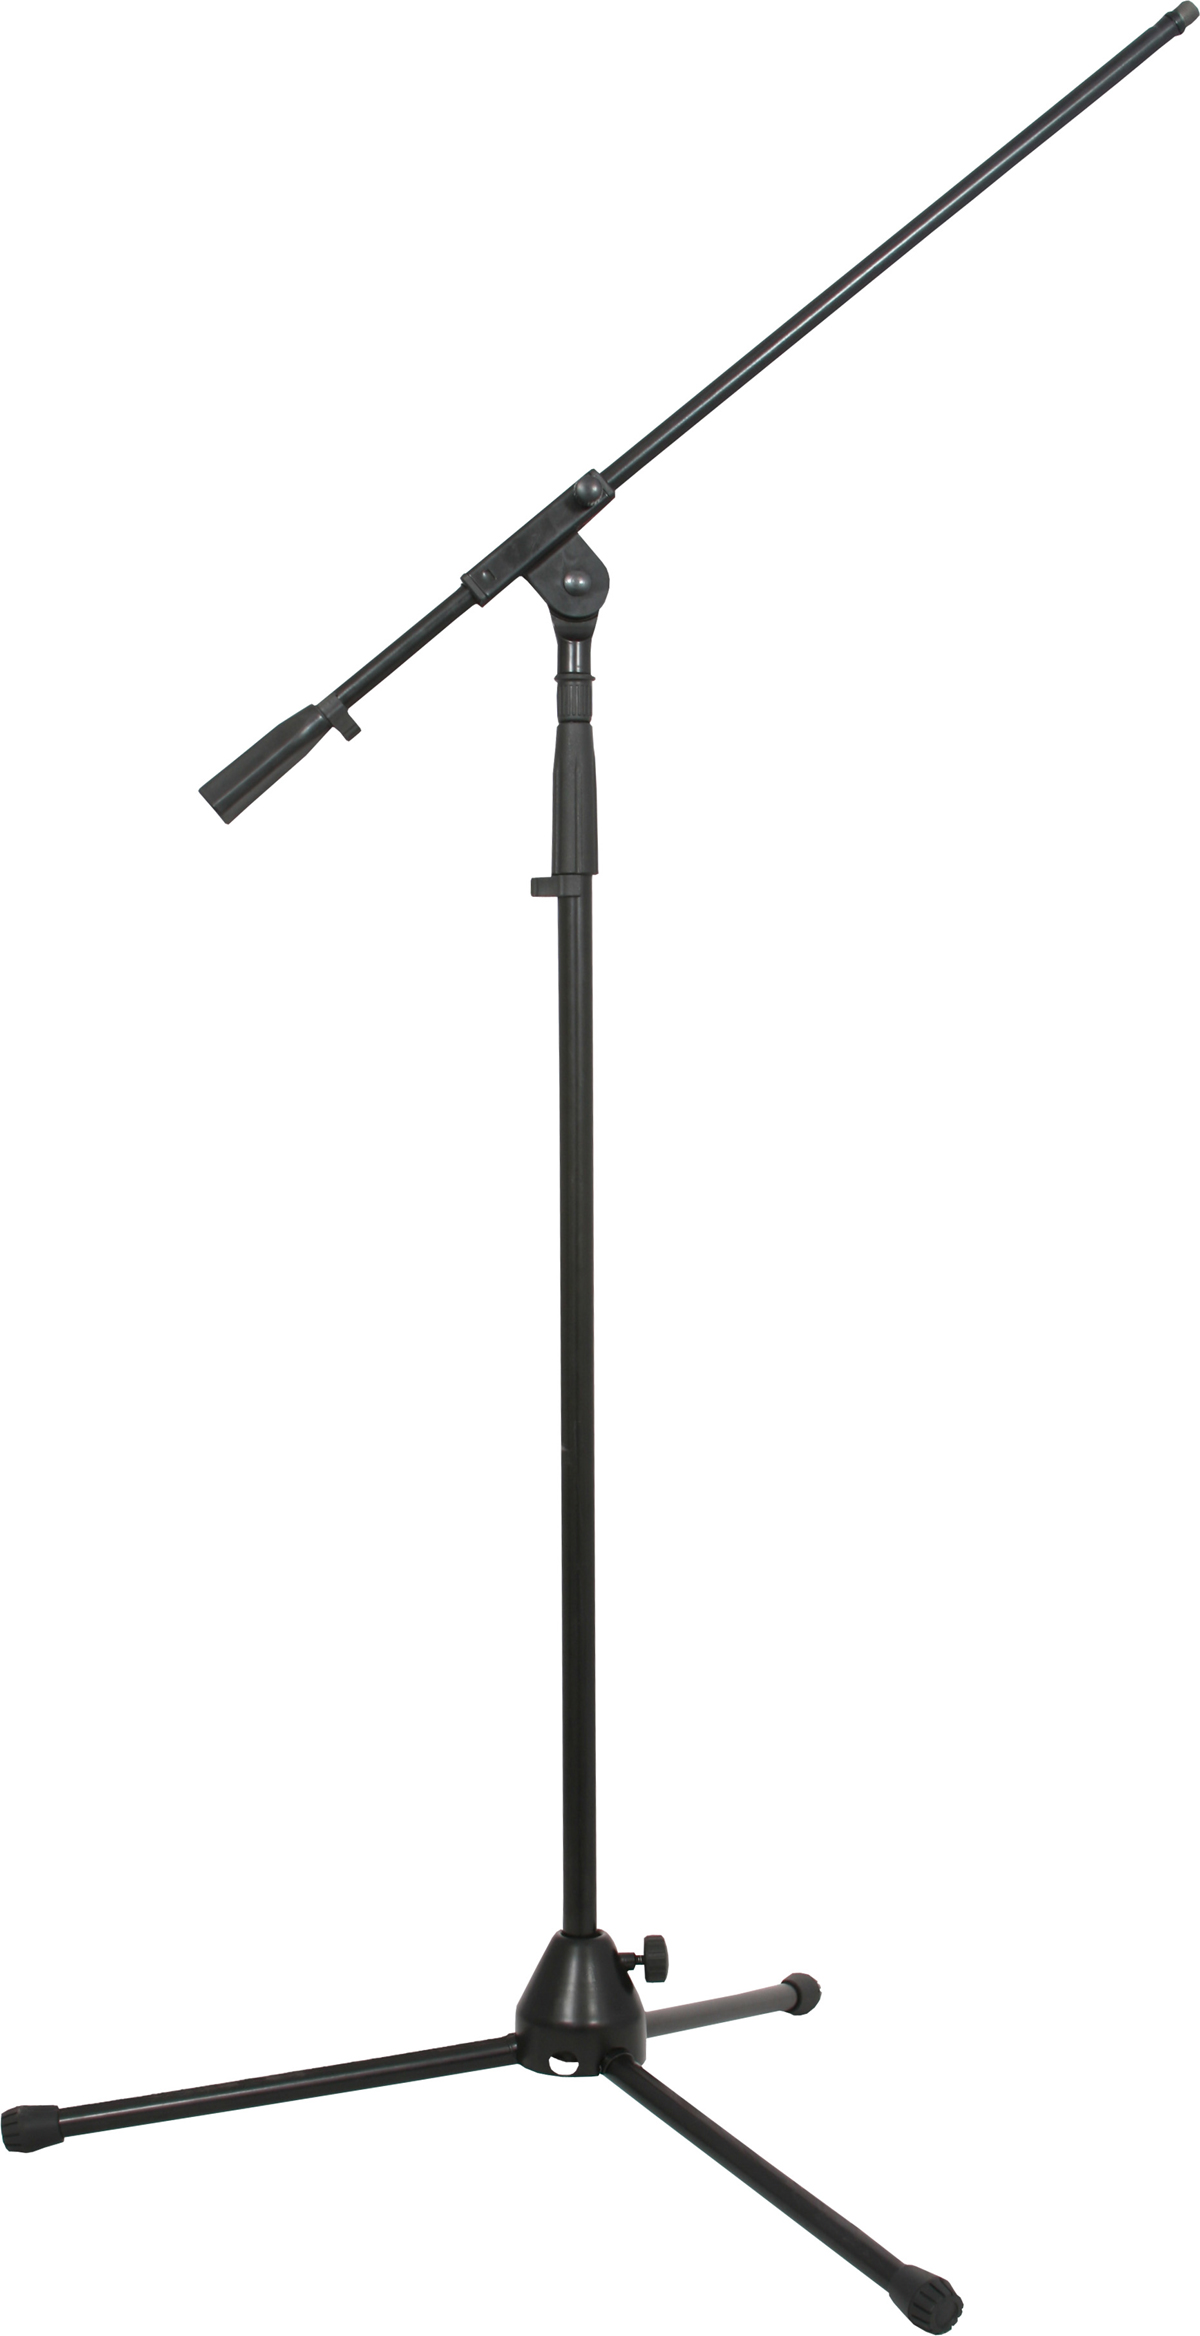 Galaxy Audio MST-TRIBOOM Tripod Microphone Boom Stand with Metal Clamp